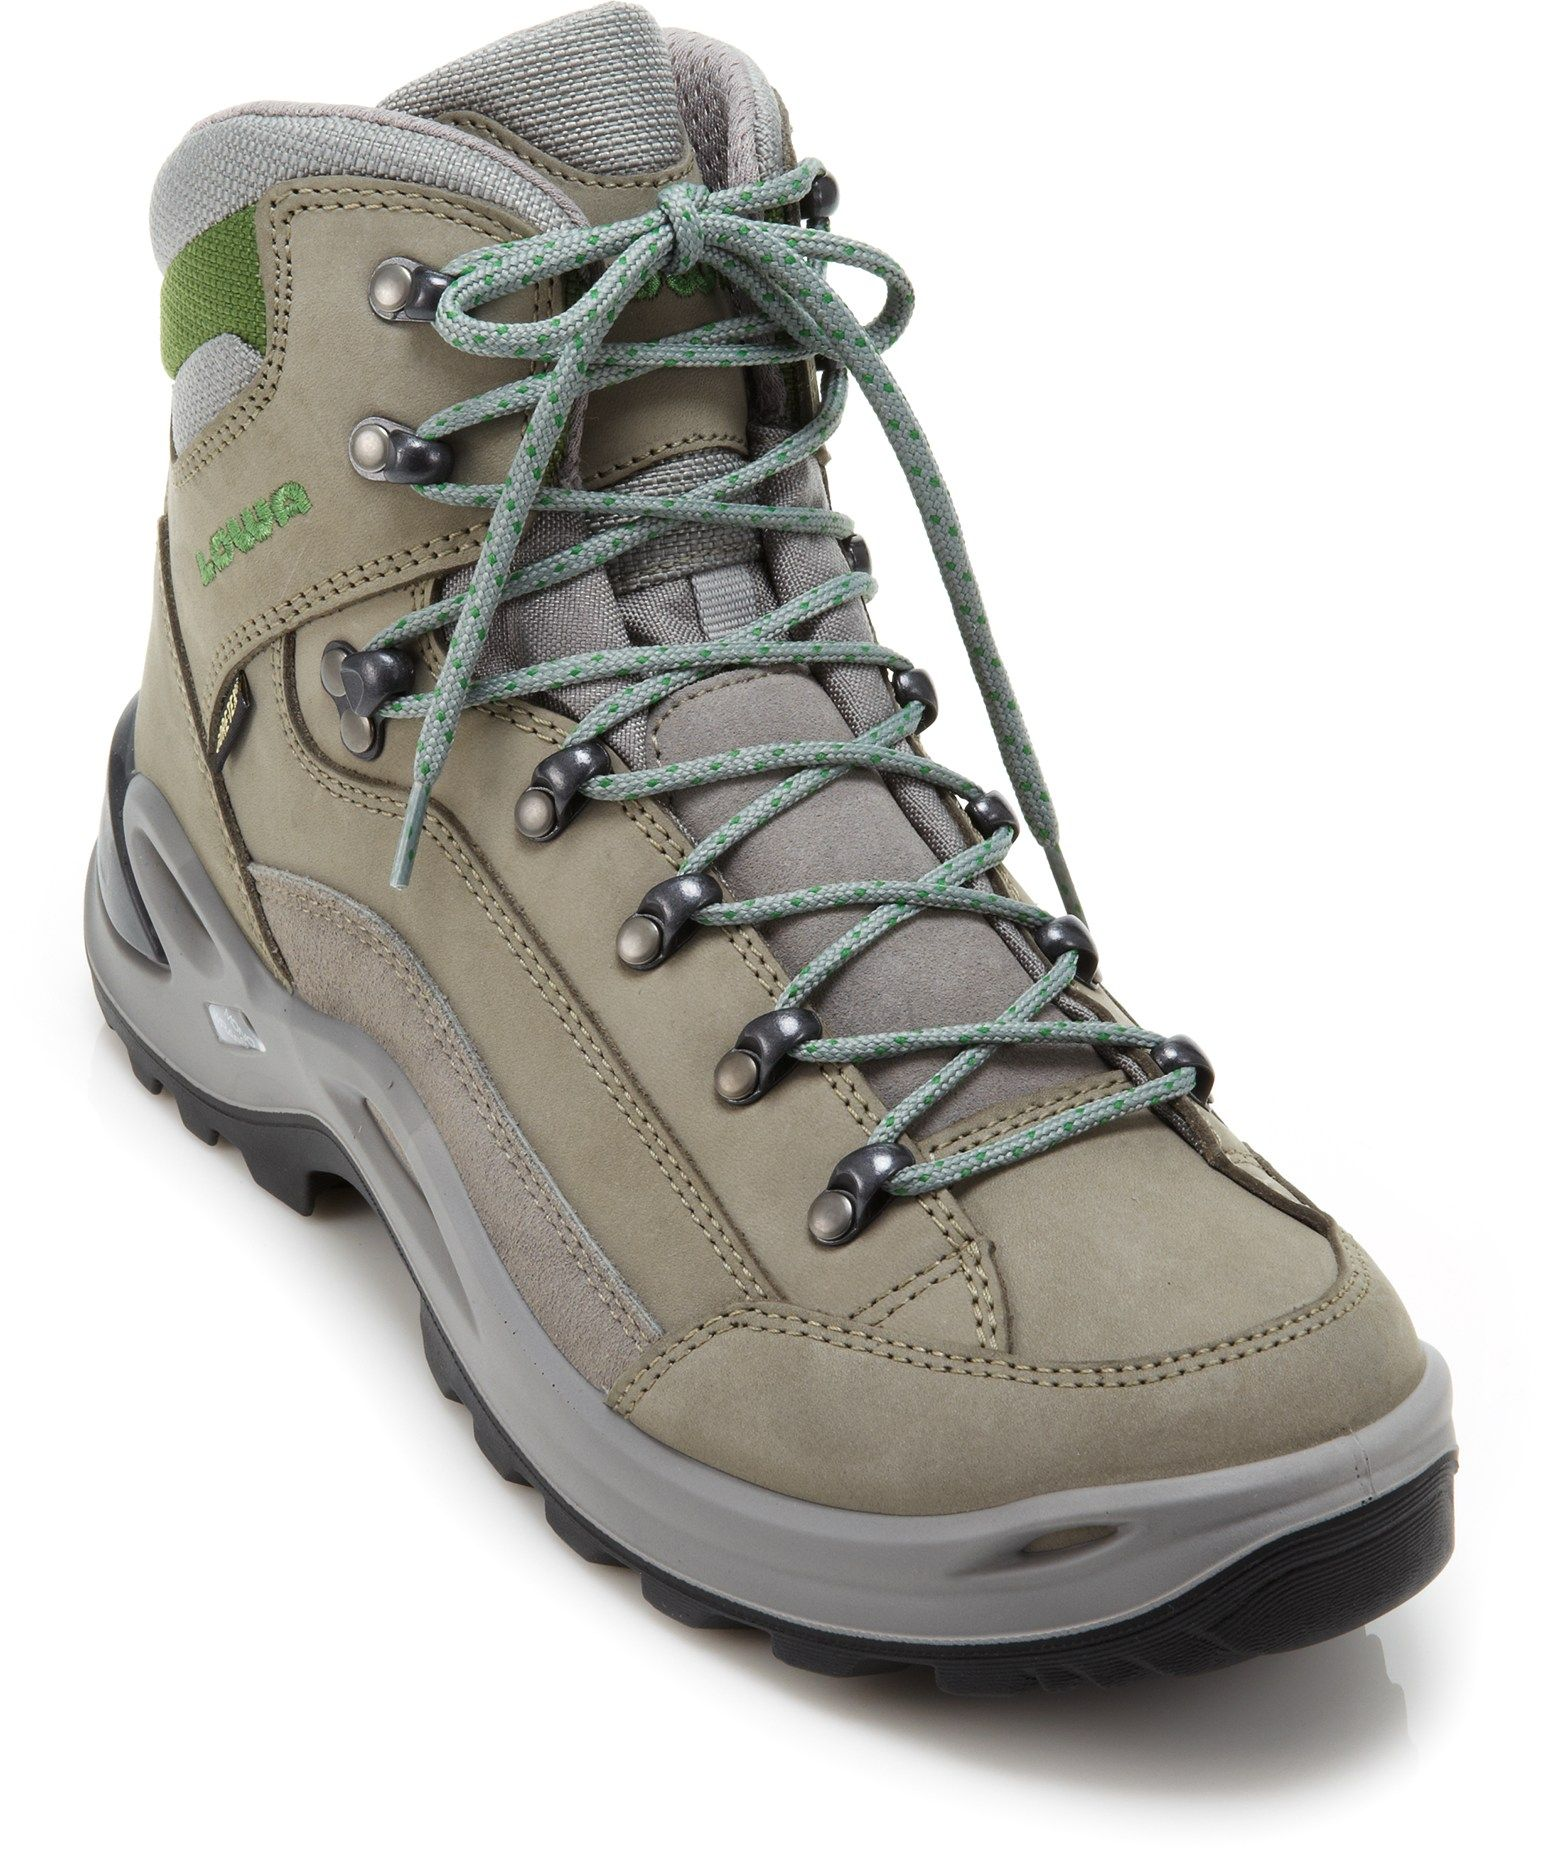 88c1db52215 Lowa Renegade GTX Mid Hiking Boots - Women's - Free Shipping at REI.com